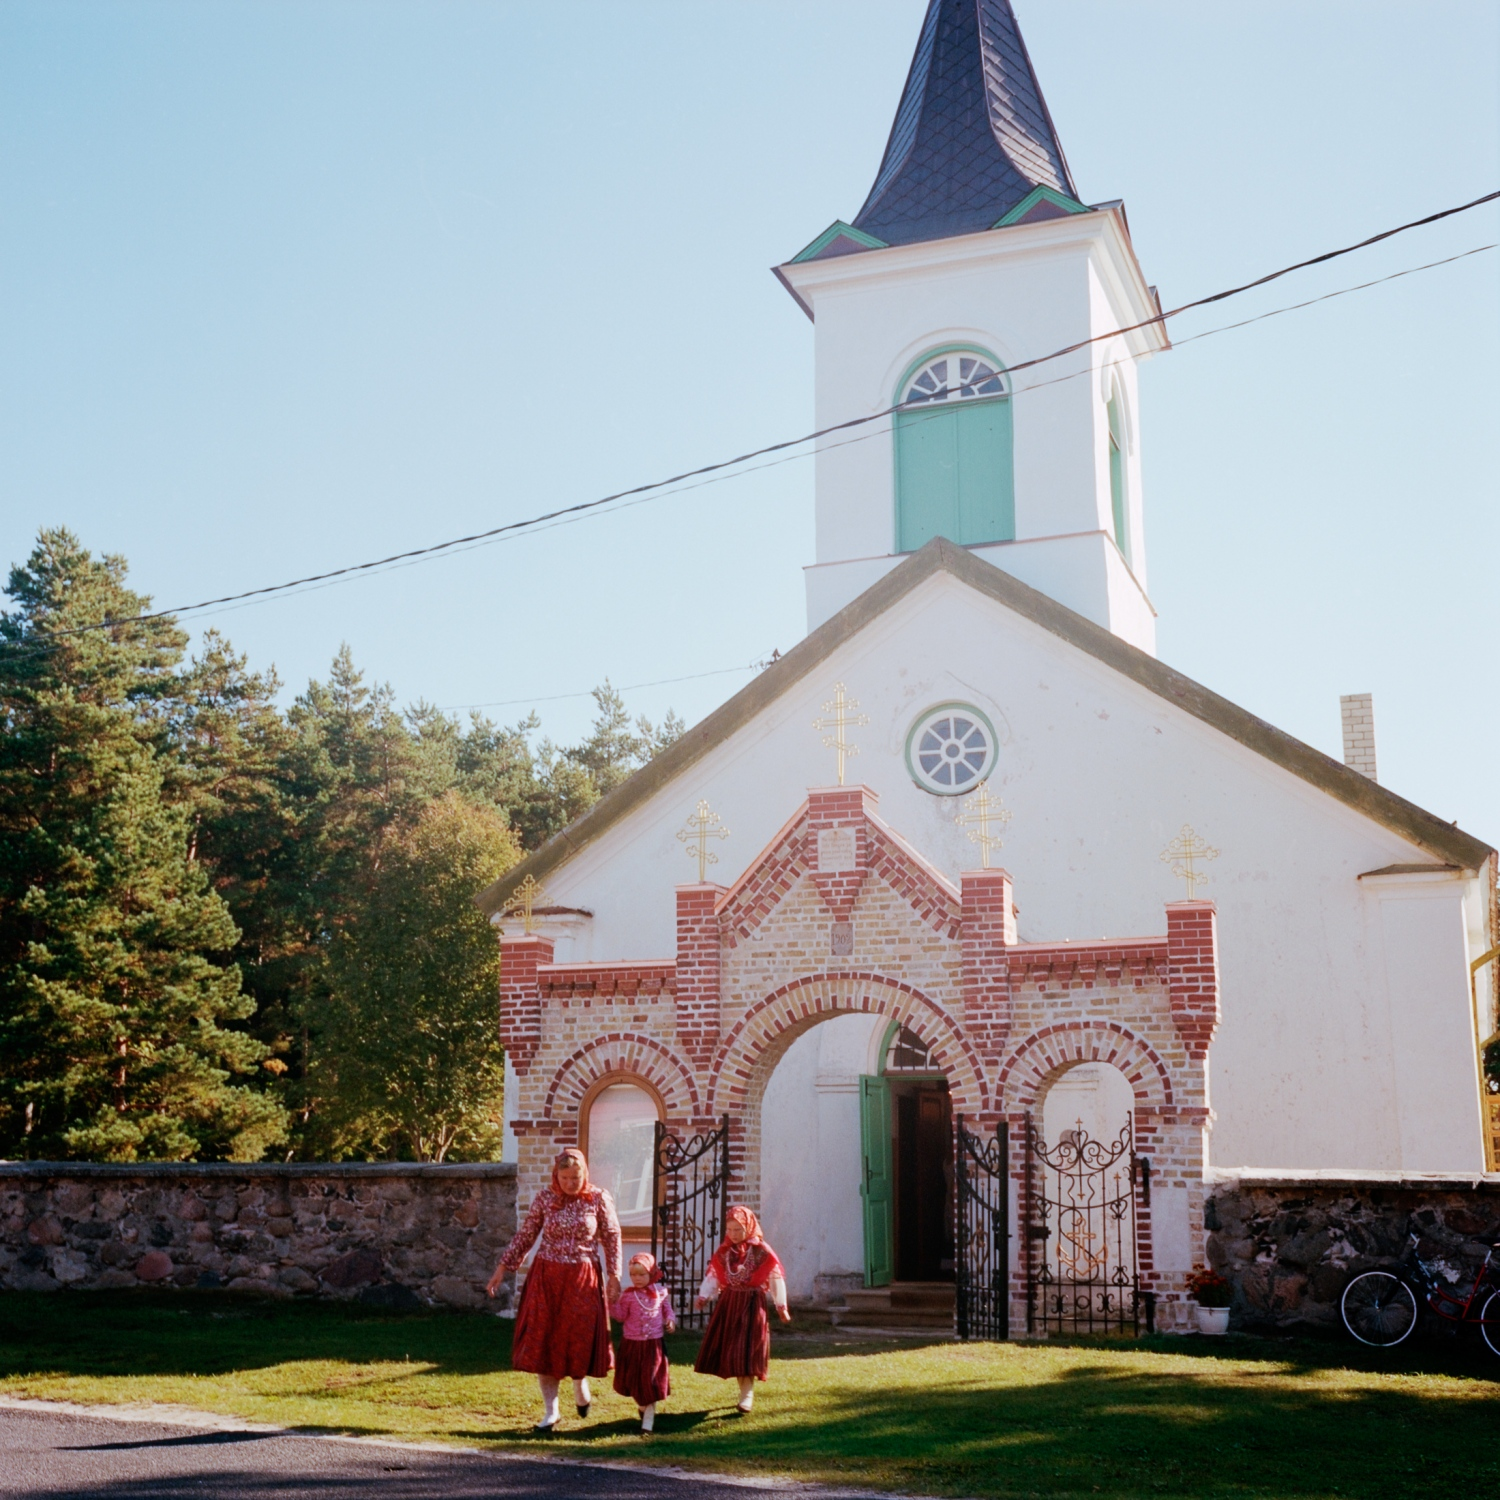 Kihnu orthodox church. In the 19th century almost all of the Kihnu population was converted to the Orthodox Church. In 1860 the Lutheran Church became Orthodox. September 2013.